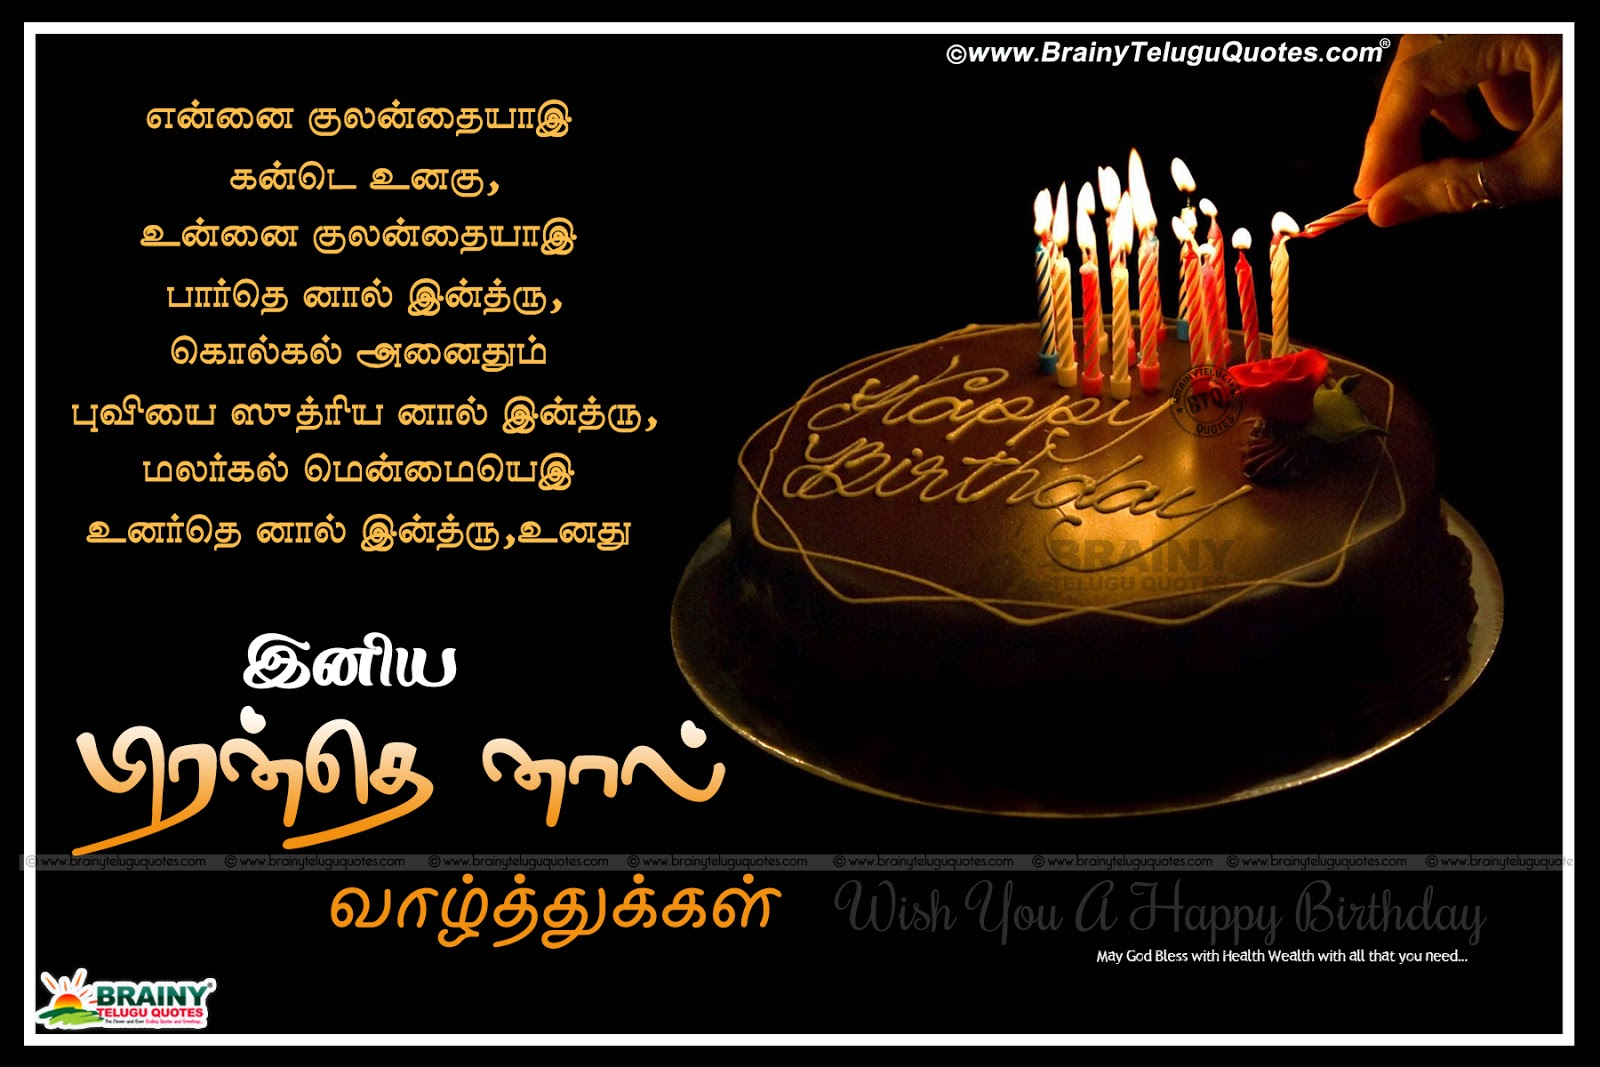 tamil birthday wishes quotes kavithai